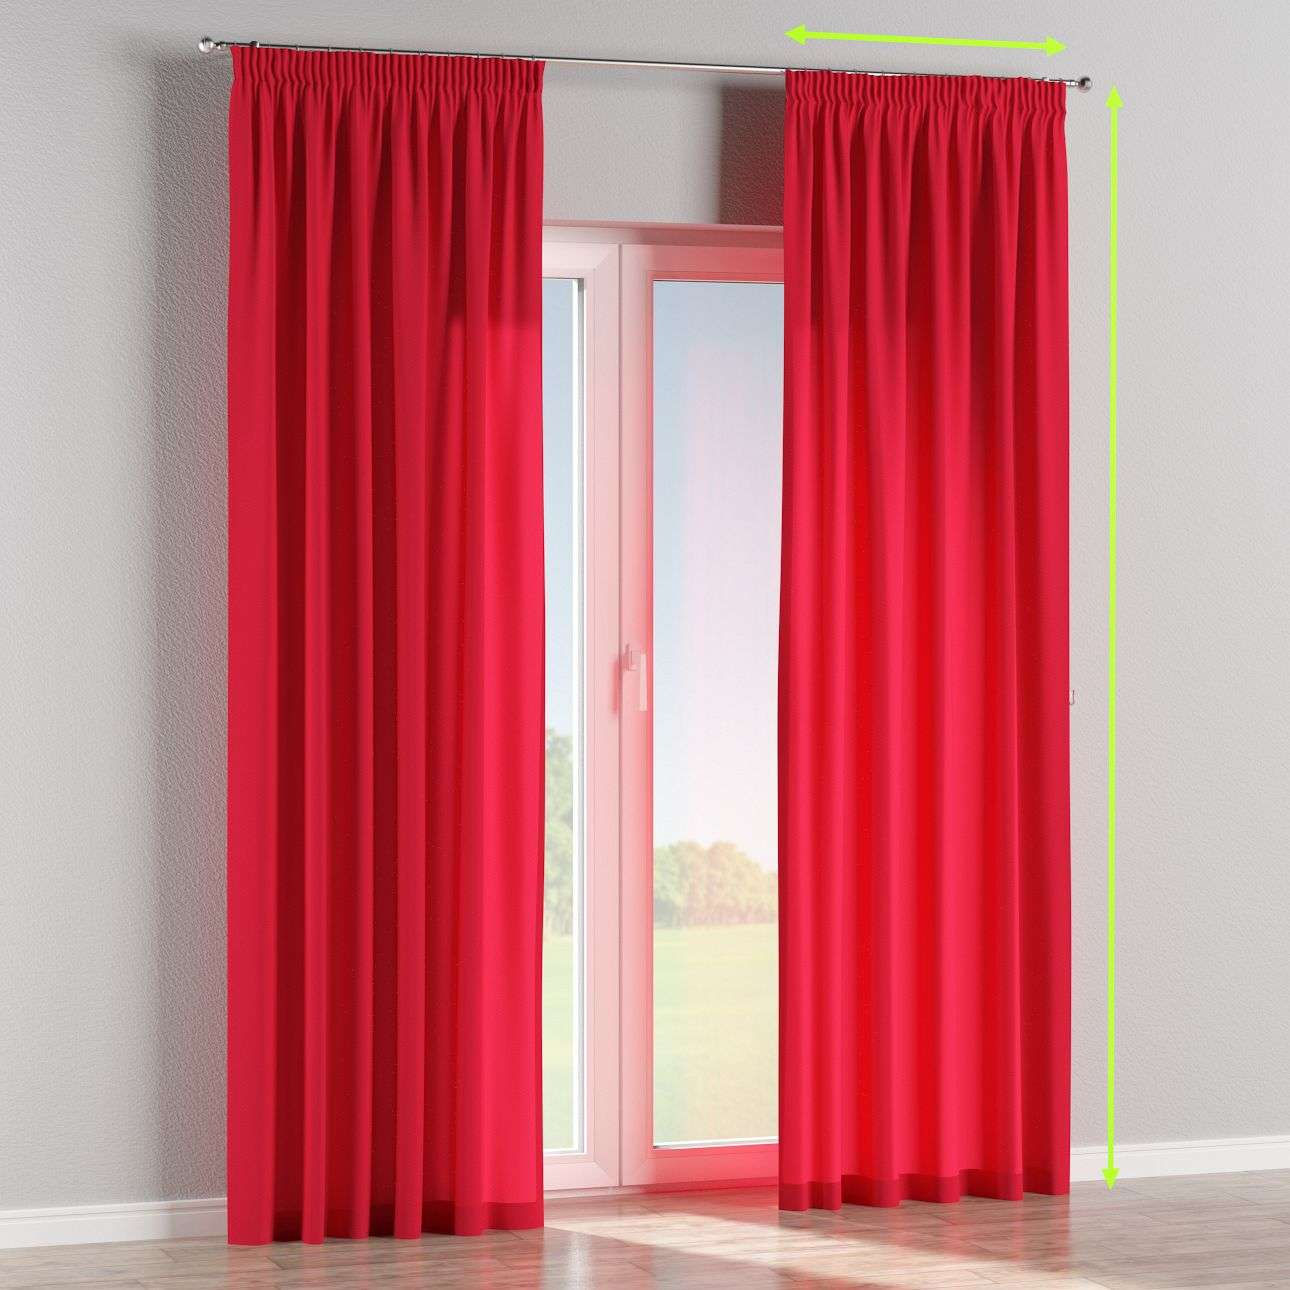 Pencil pleat lined curtains in collection Quadro, fabric: 136-19